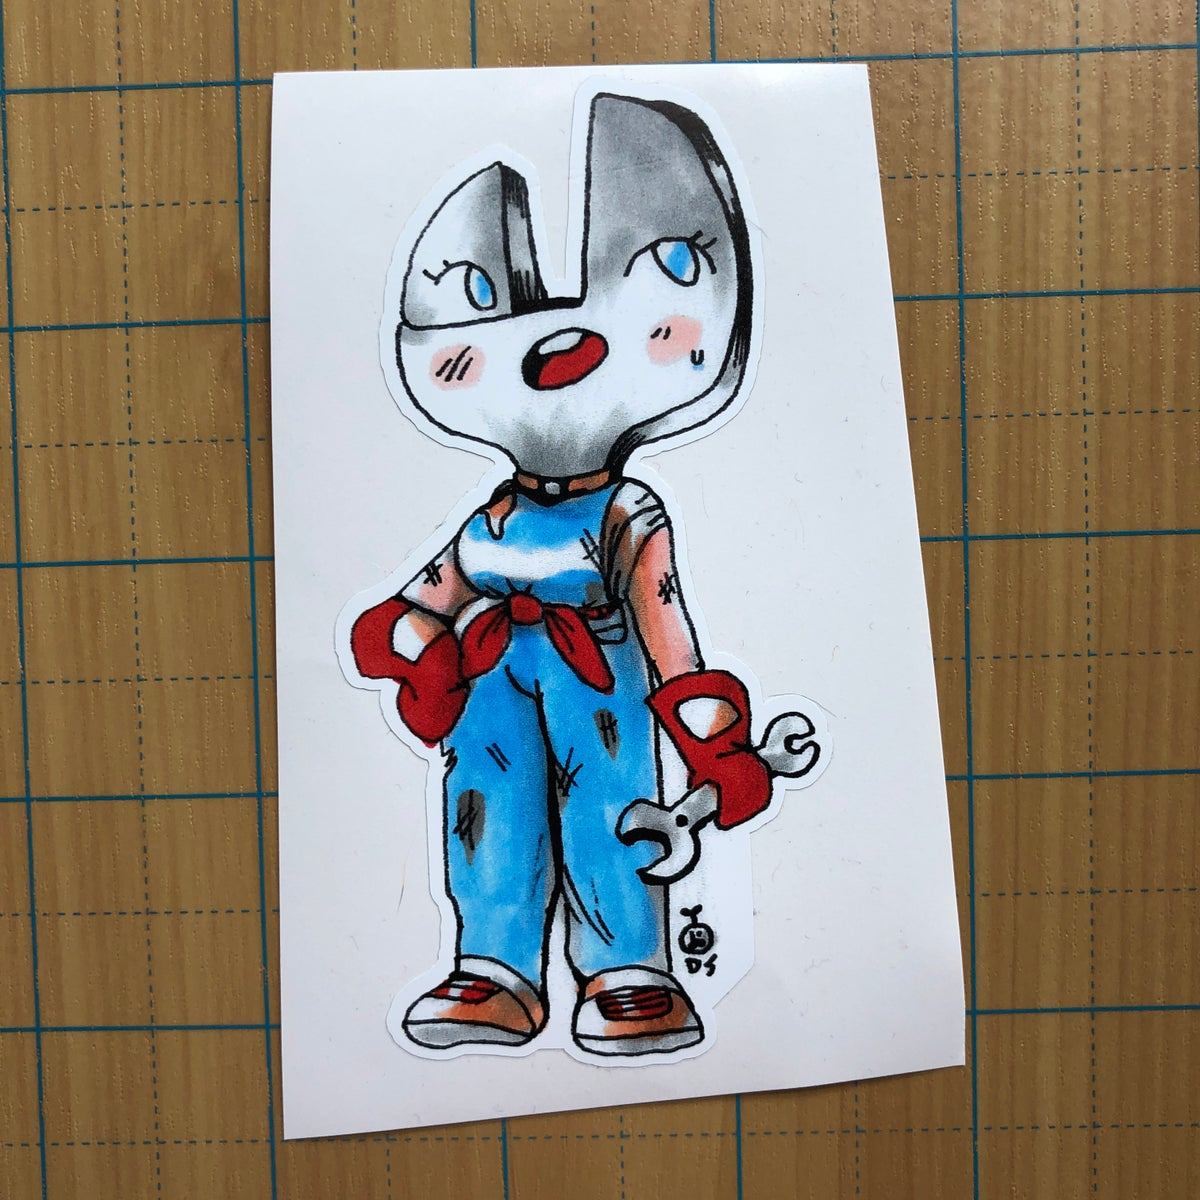 Image of Wrench Chick sticker